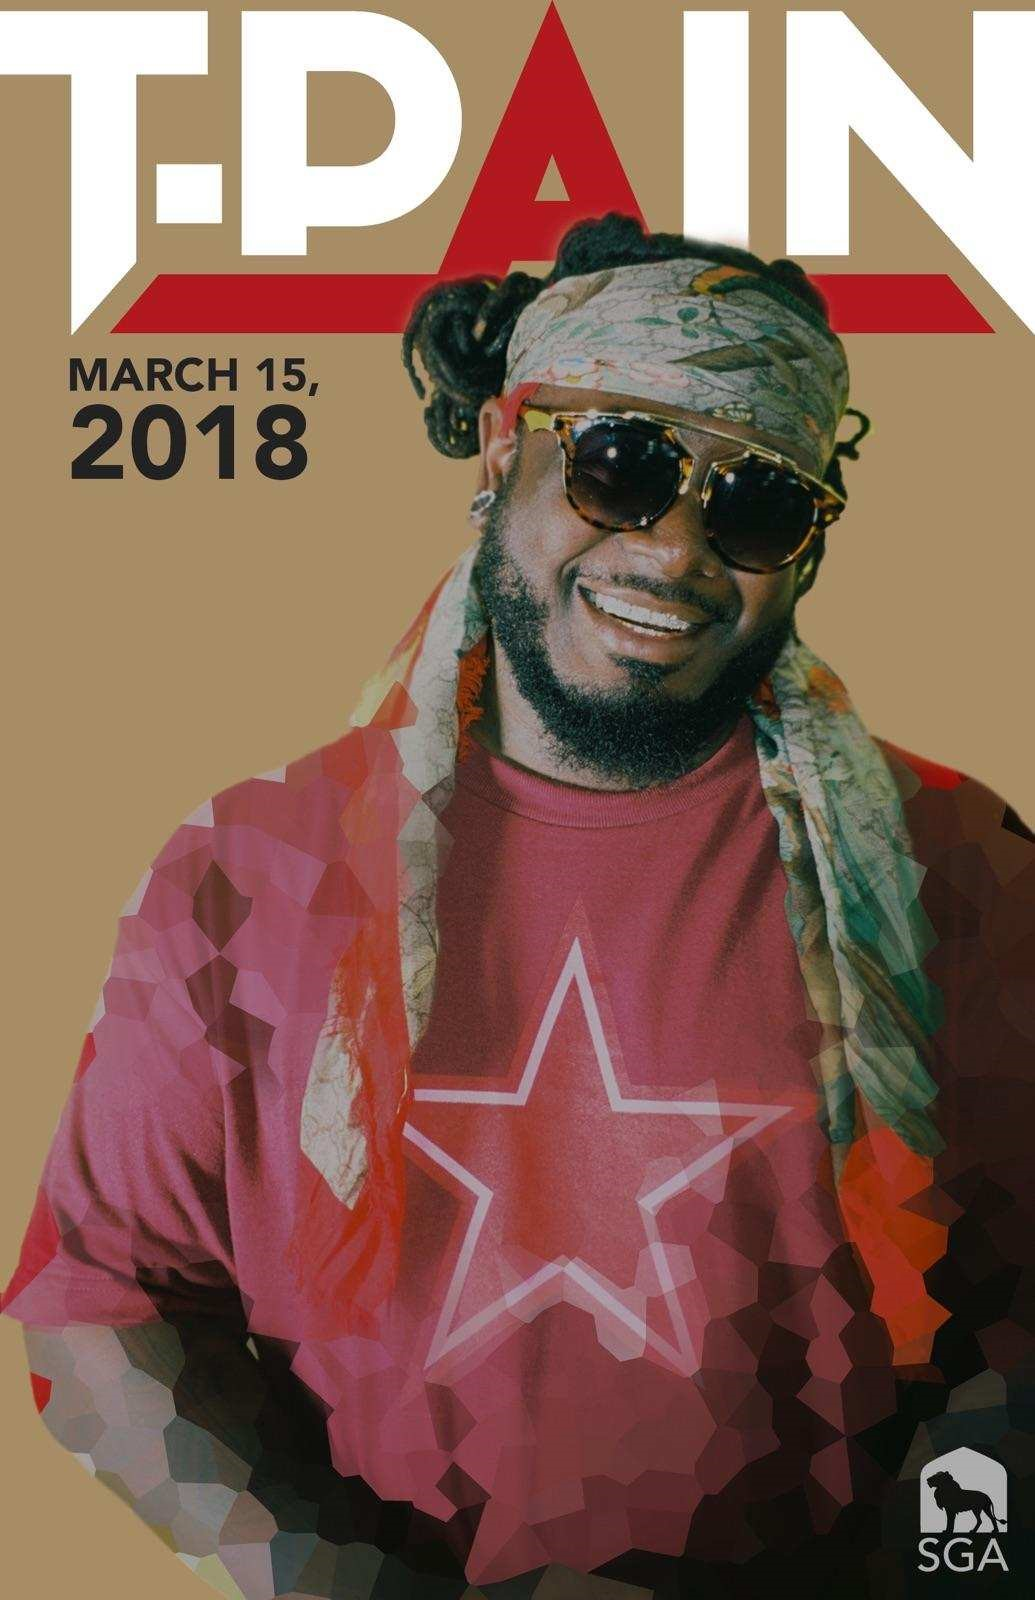 UPC Spring Concert Featuring T-Pain